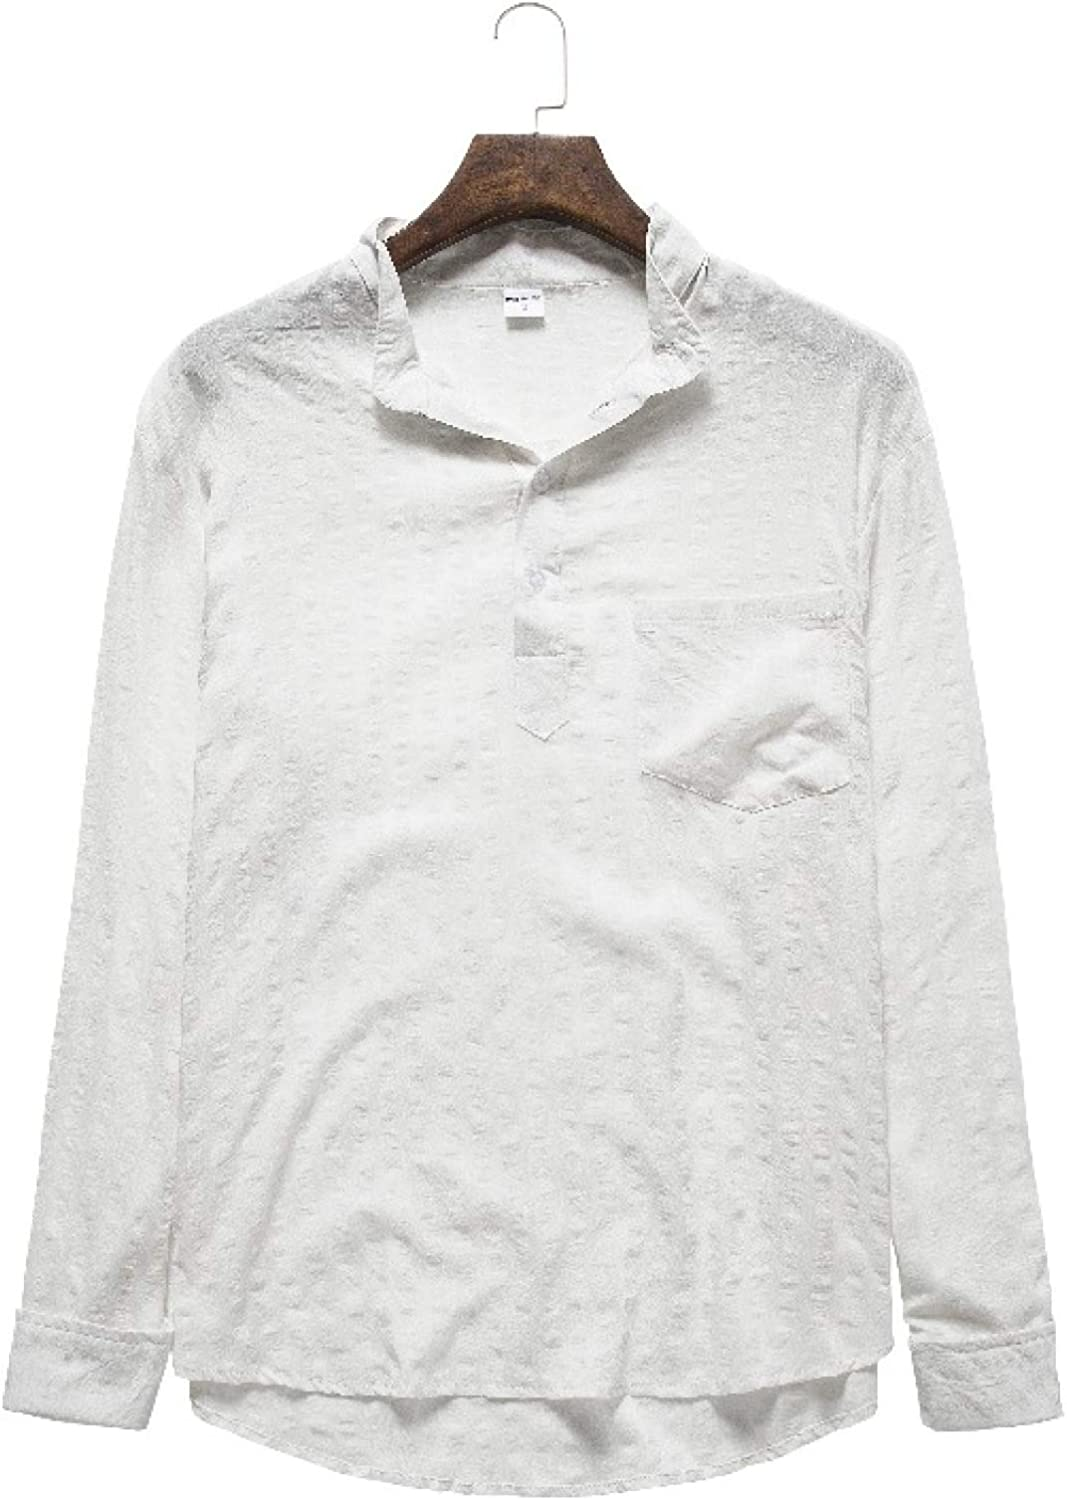 Men's OFFicial shop Shirts Spring and Autumn Long-Sl Solid Color Simple Casual Ranking TOP18